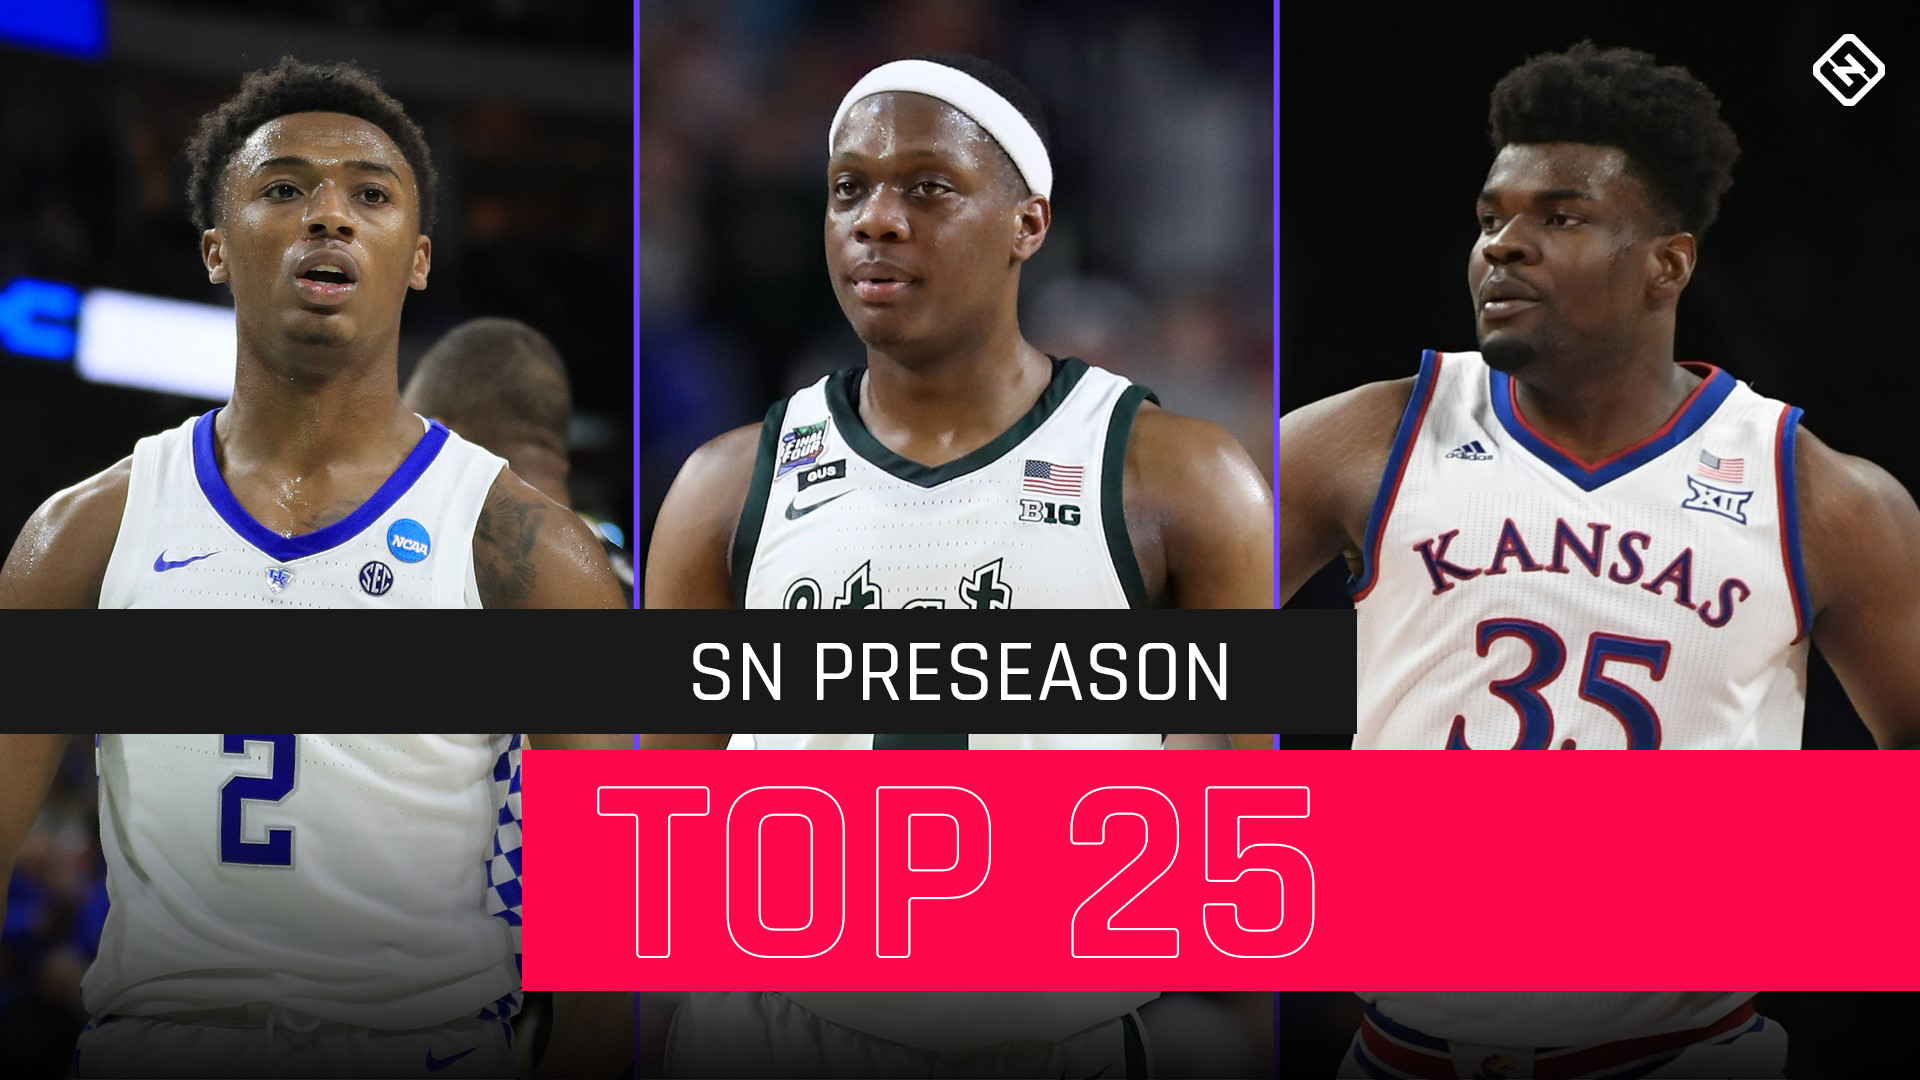 College basketball rankings: SN's updated preseason top 25 for 2019-20